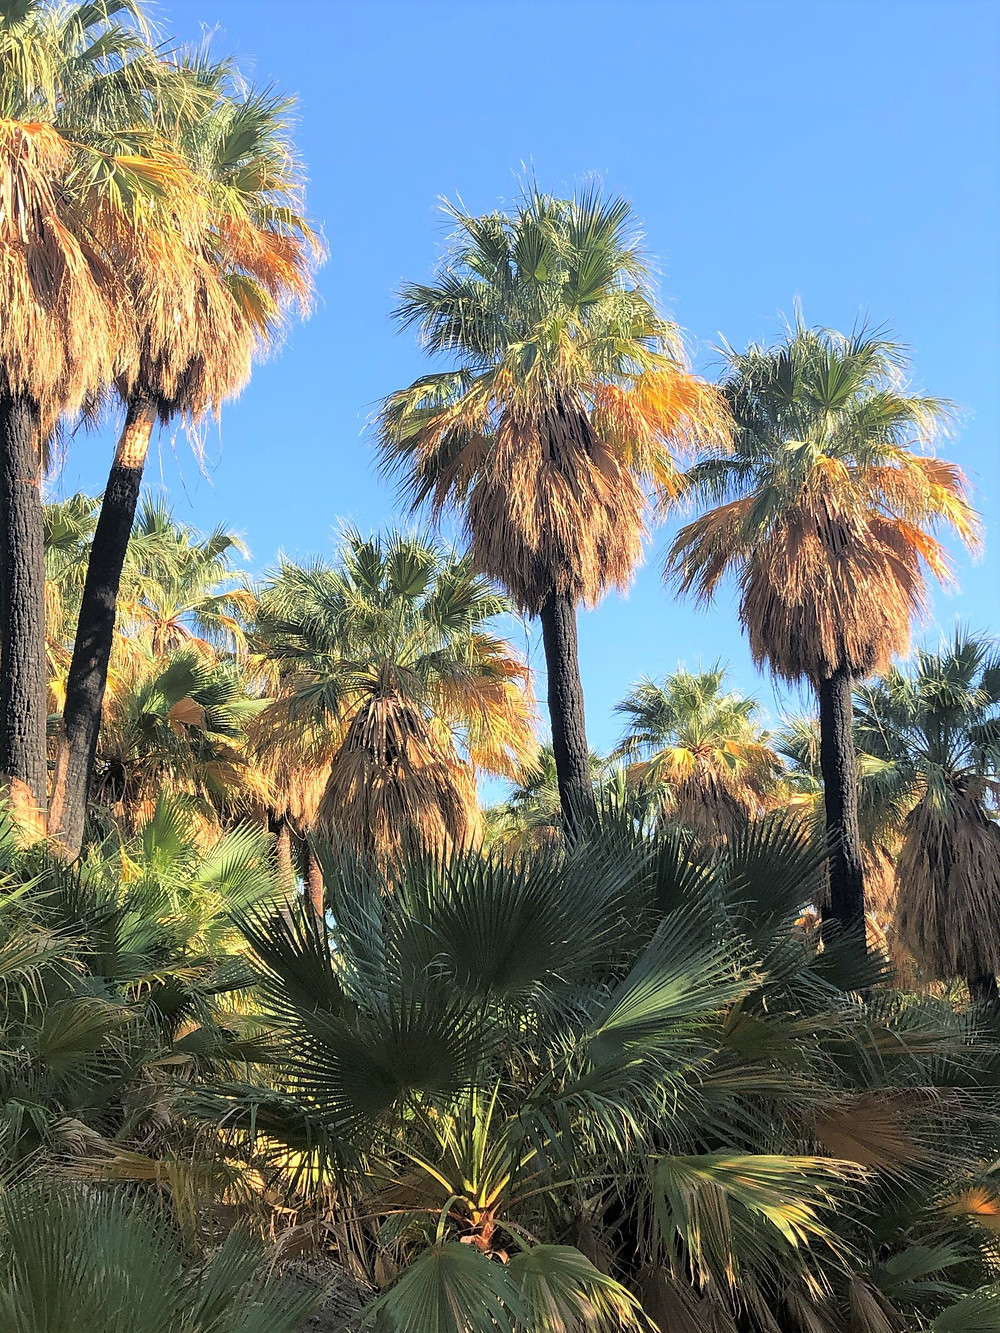 Lush plant life in Willis Palm grove.  Dammed groundwater along the San Andreas Fault Network